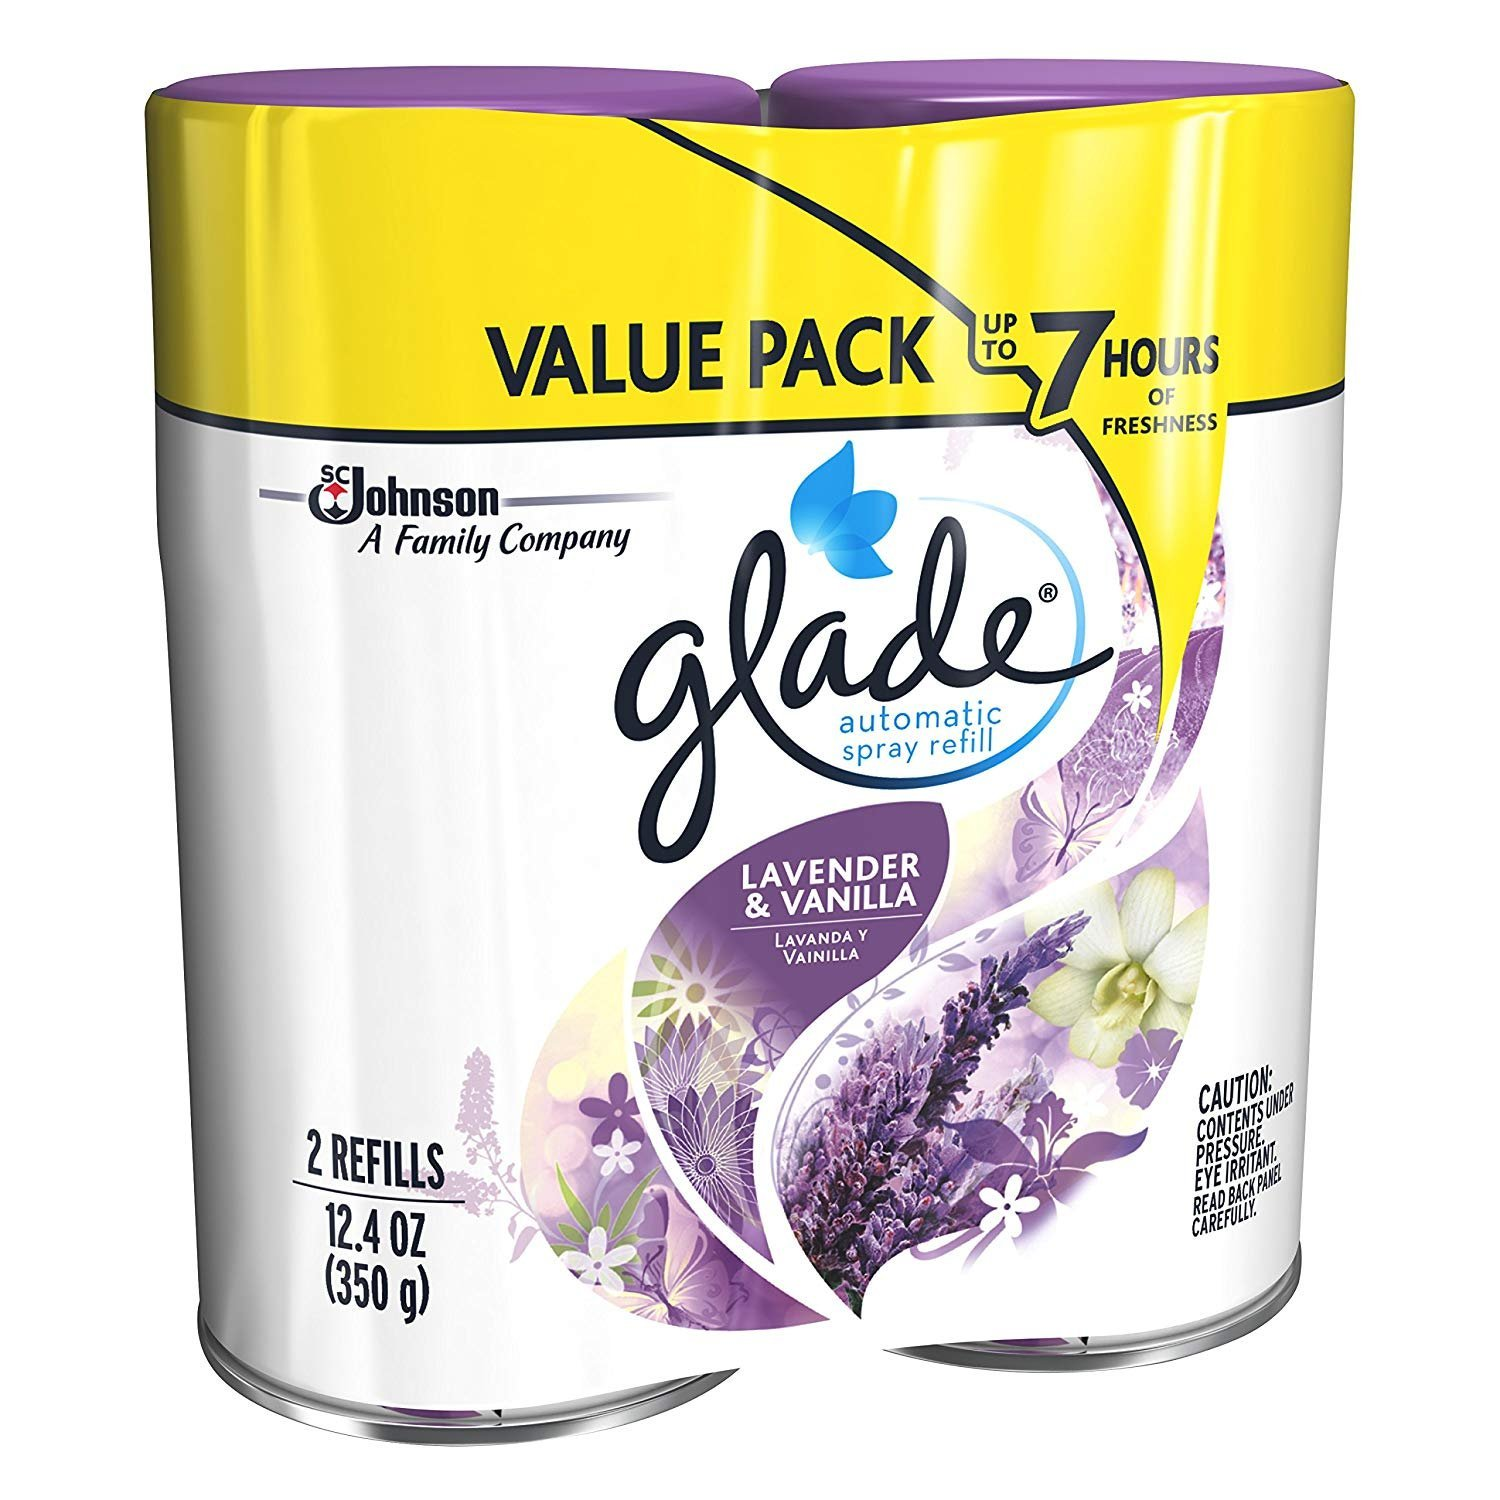 Glade Automatic Spray Refill - Lavender & Vanilla, 6.2 oz, Pack - 3, (6 Count) by Glade (Image #4)